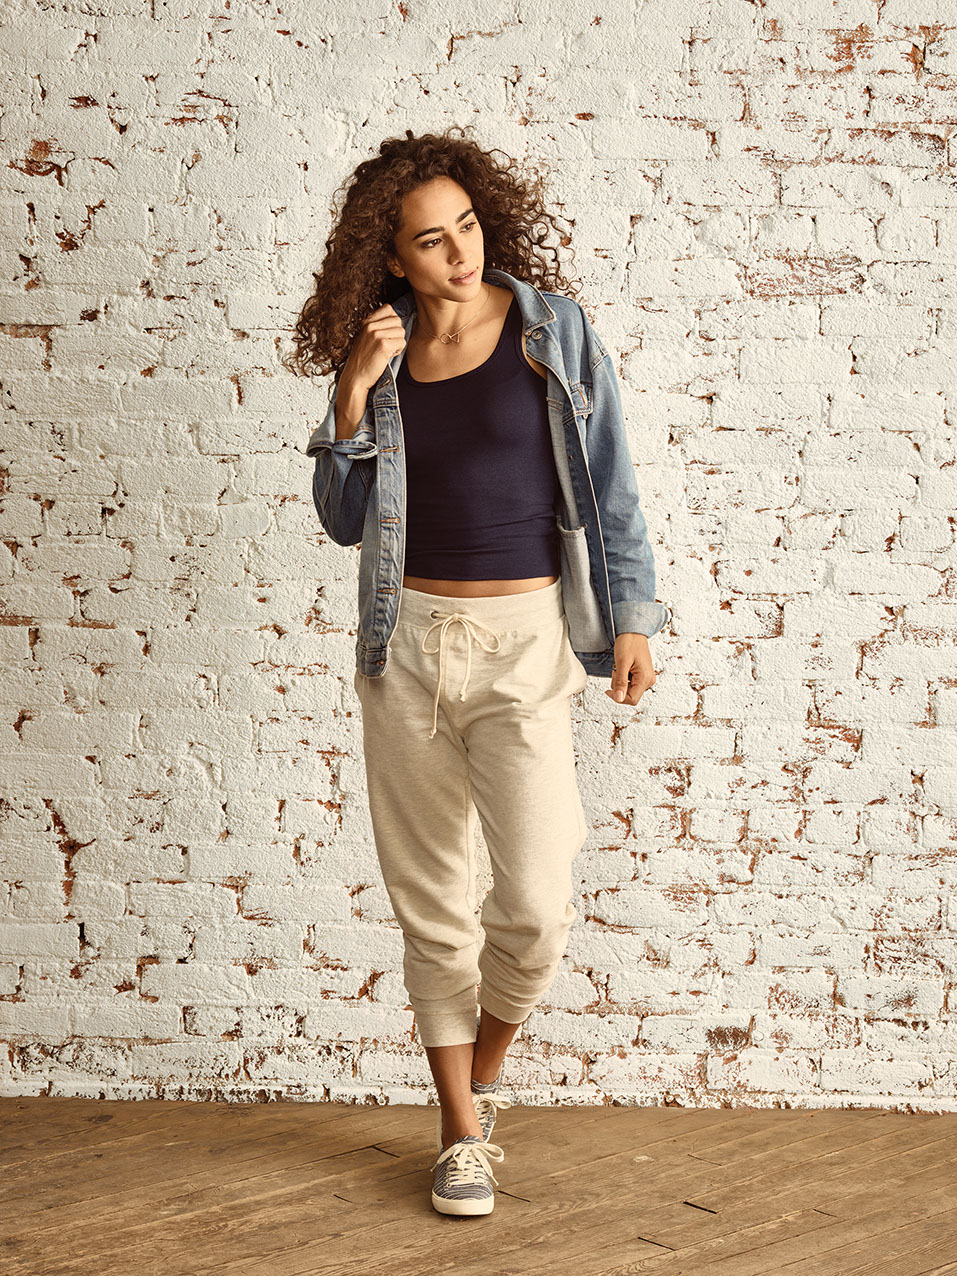 Originals AO750 Women's French Terry Jogger.jpg